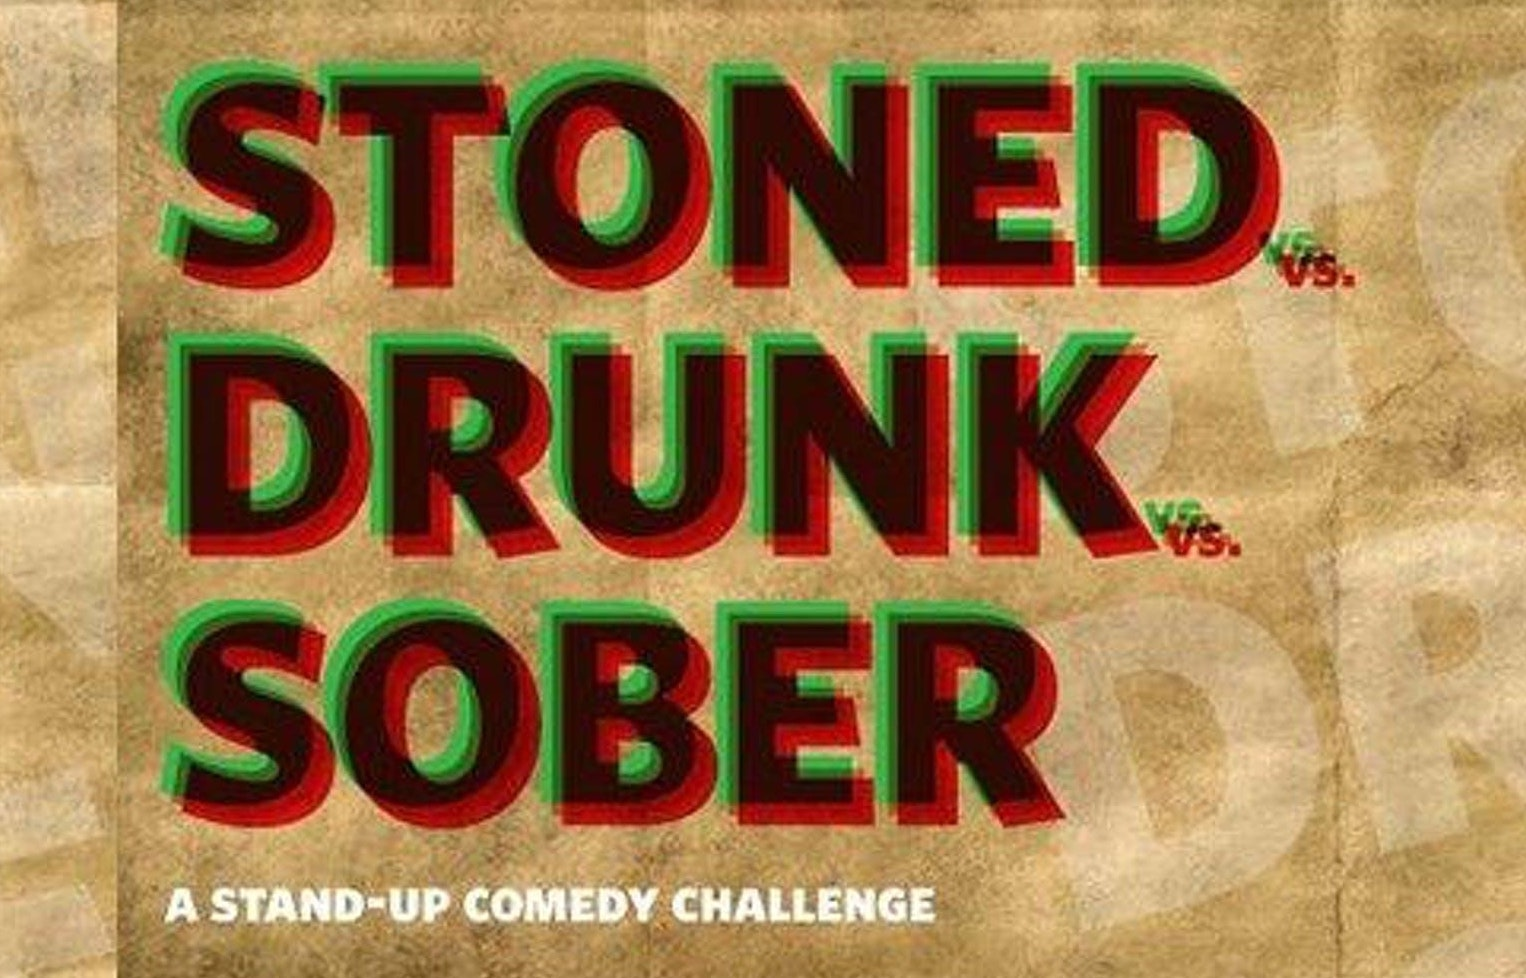 Stoned Vs. Drunk Vs. Sober